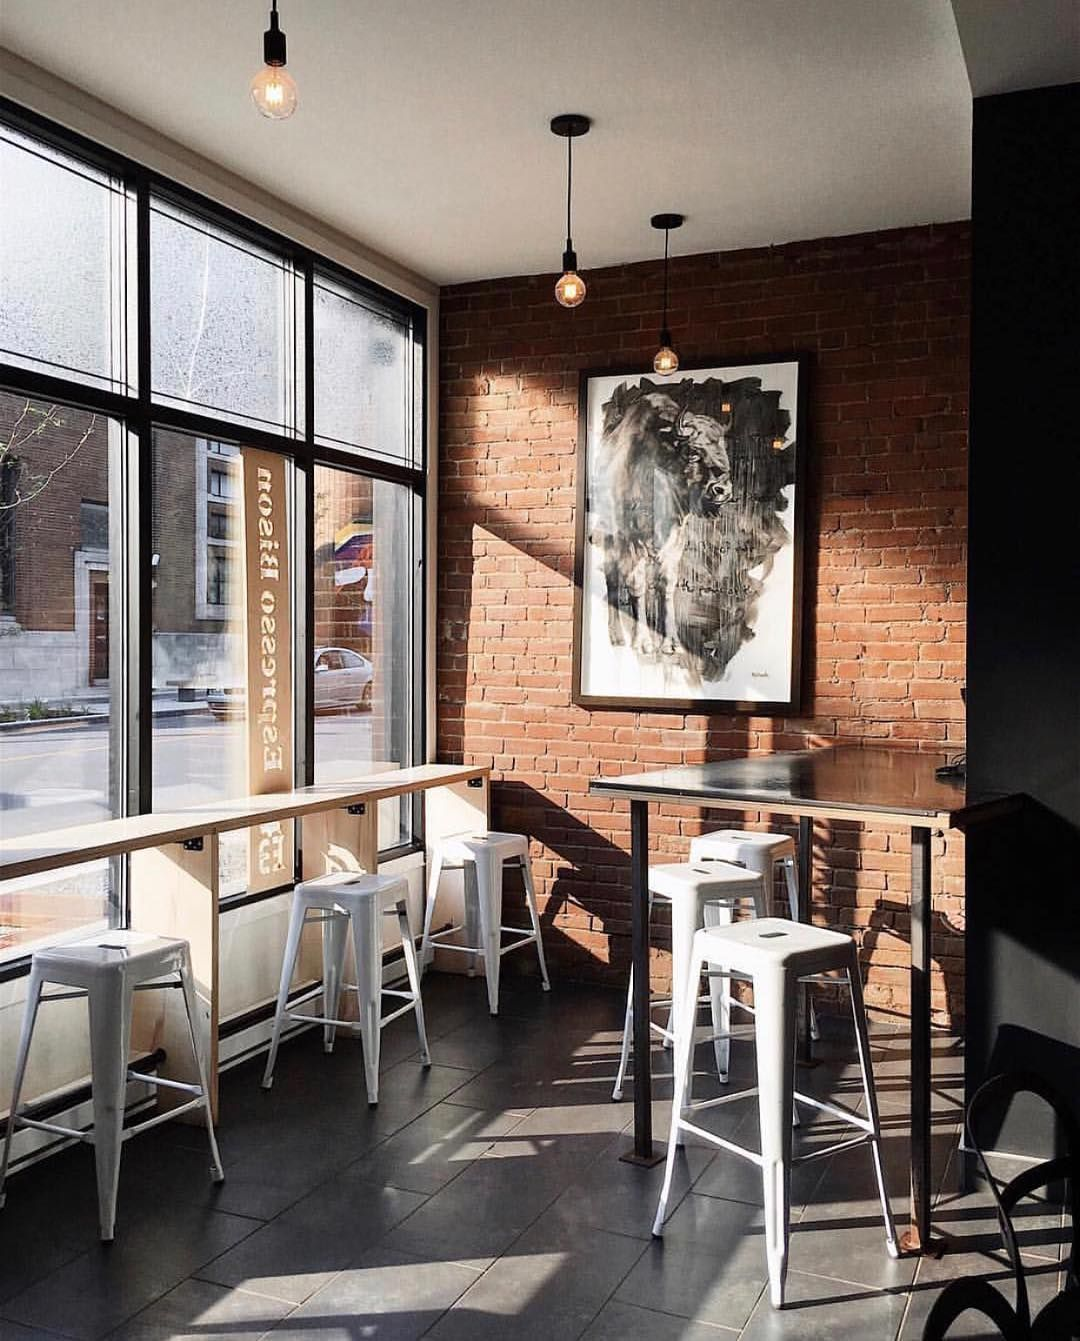 Espresso Bison Coffee Shop In Montreal Janytremblay Th3rd Wave Quebec Canada Coffee Cafe Interior Design Coffee Shop Furniture Coffee Shops Interior